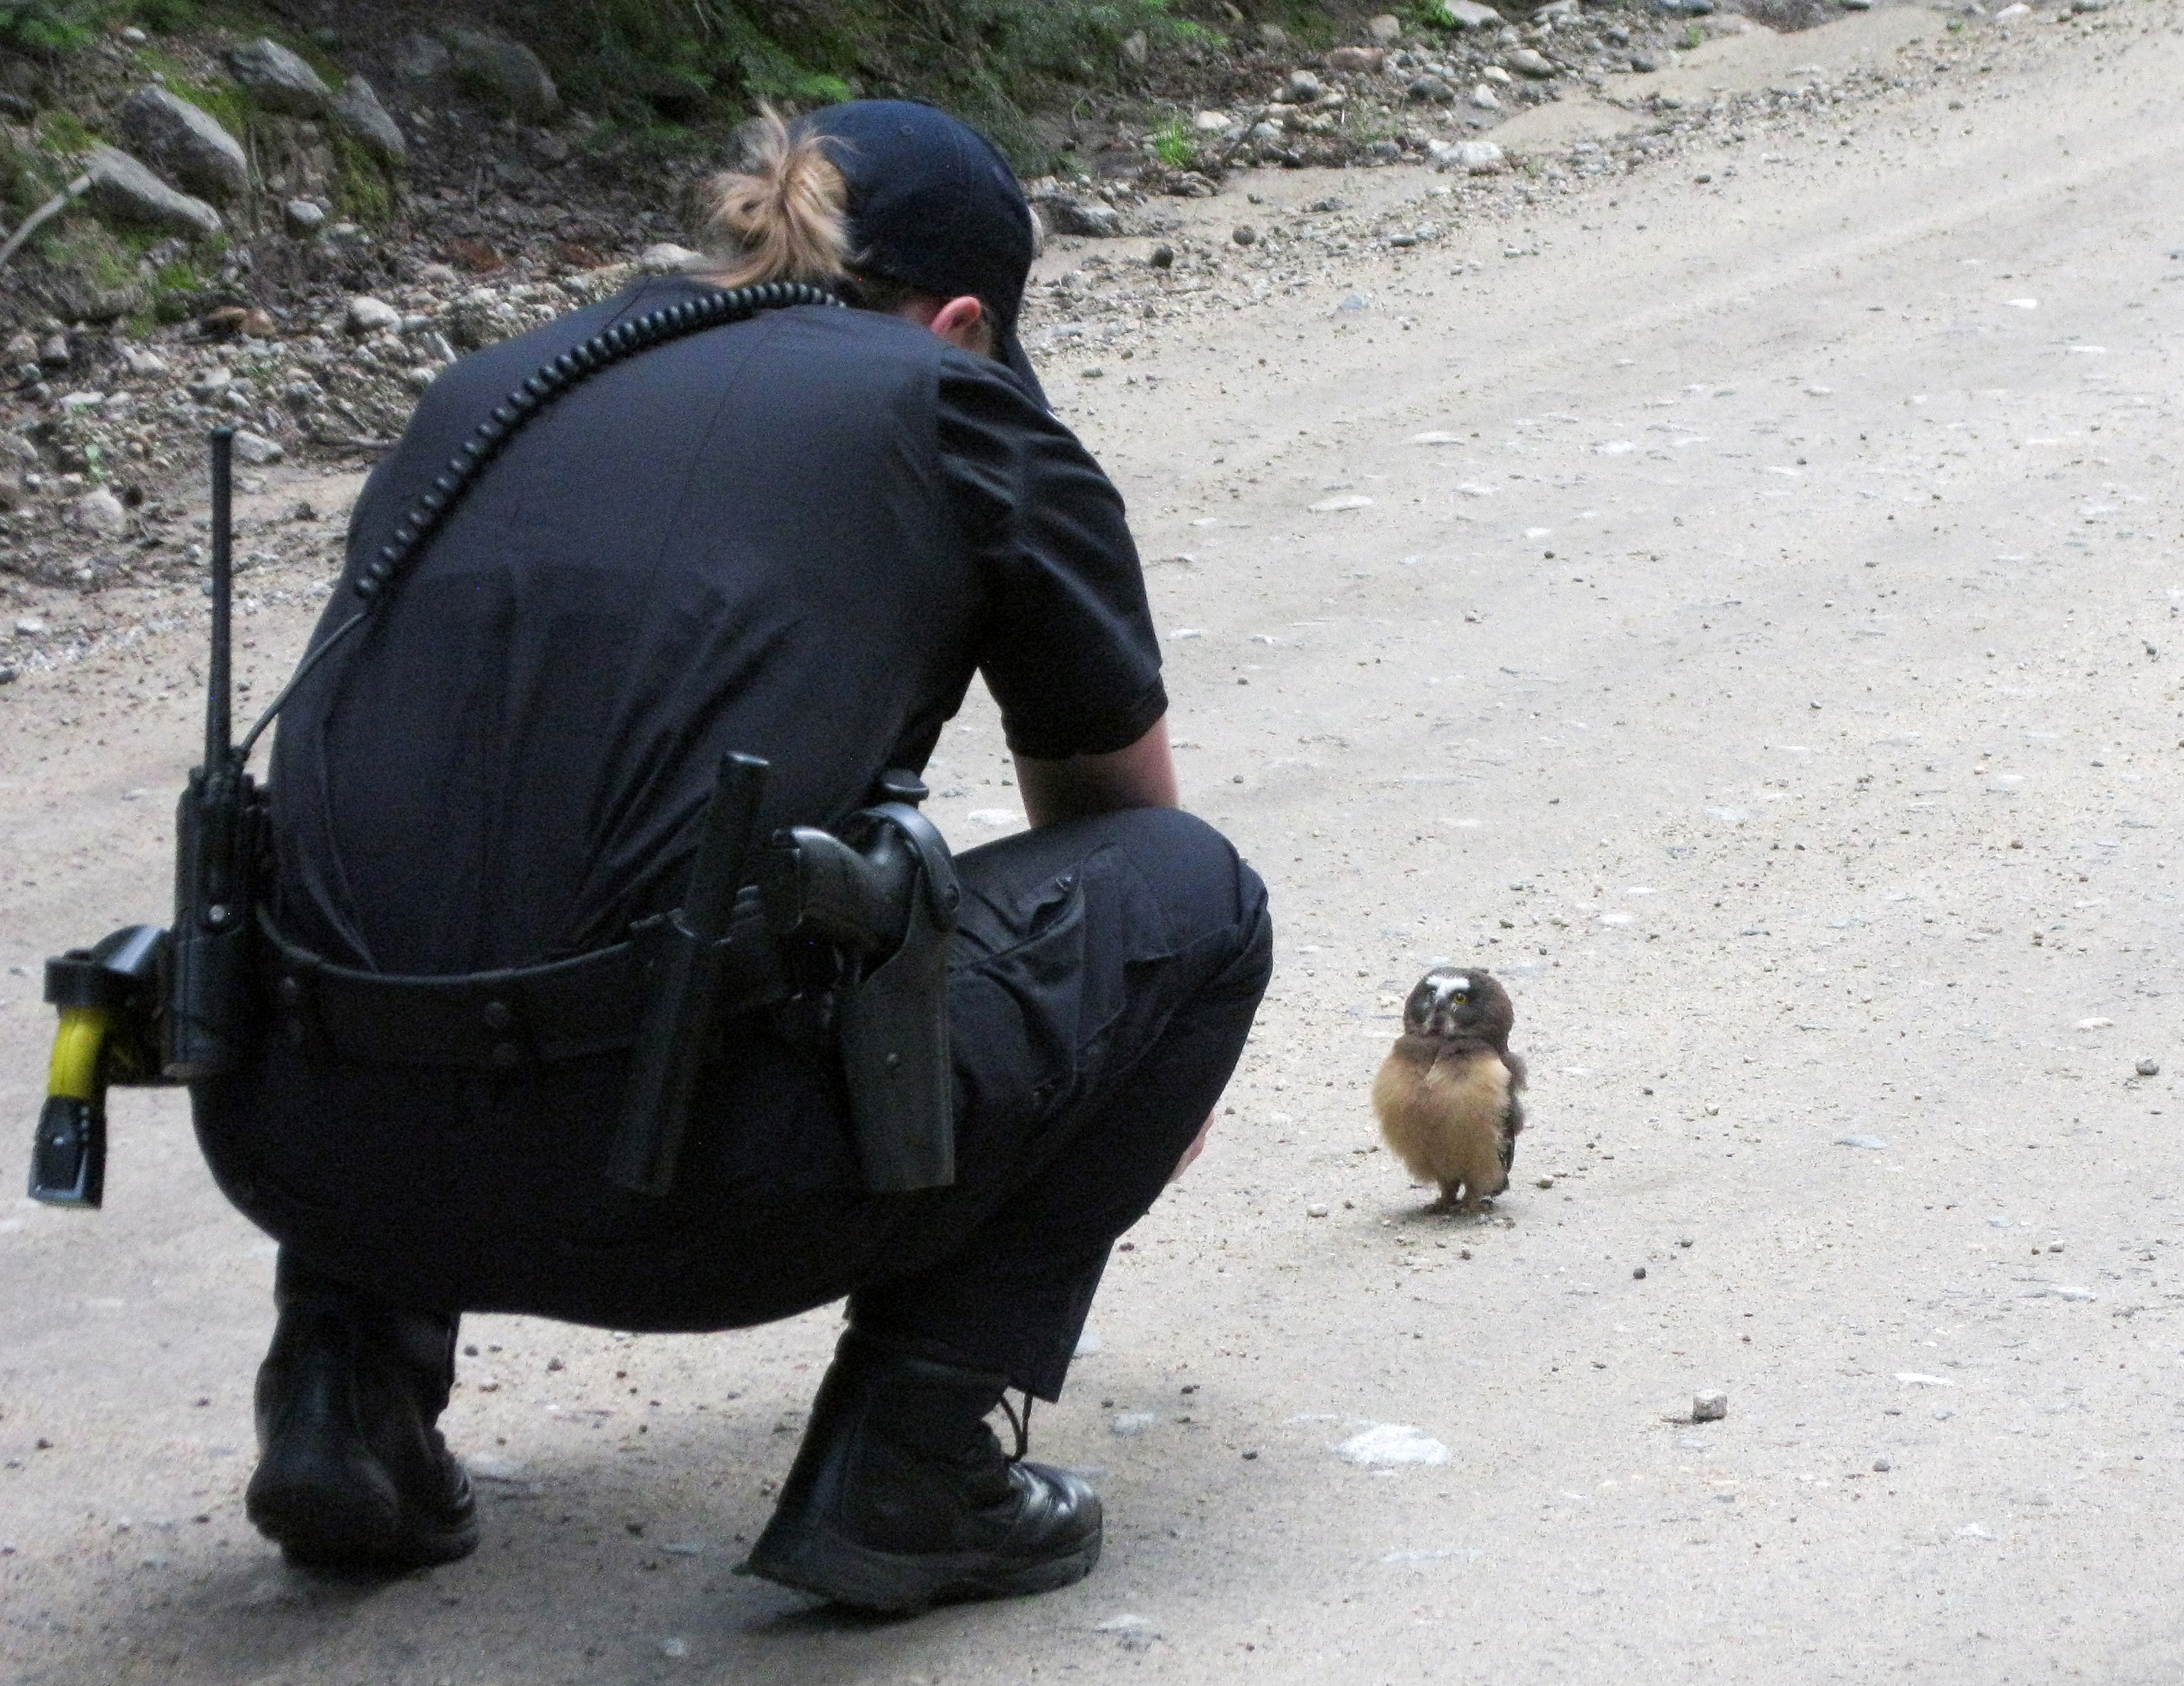 In this July 21, 2015 photo, provided by the Boulder County Sheriff's Office, Deputy Sophie Berman crouches over a small owl, making a brief video before the bird flew away, near Rainbow Lakes, outside Nederland, Colo.